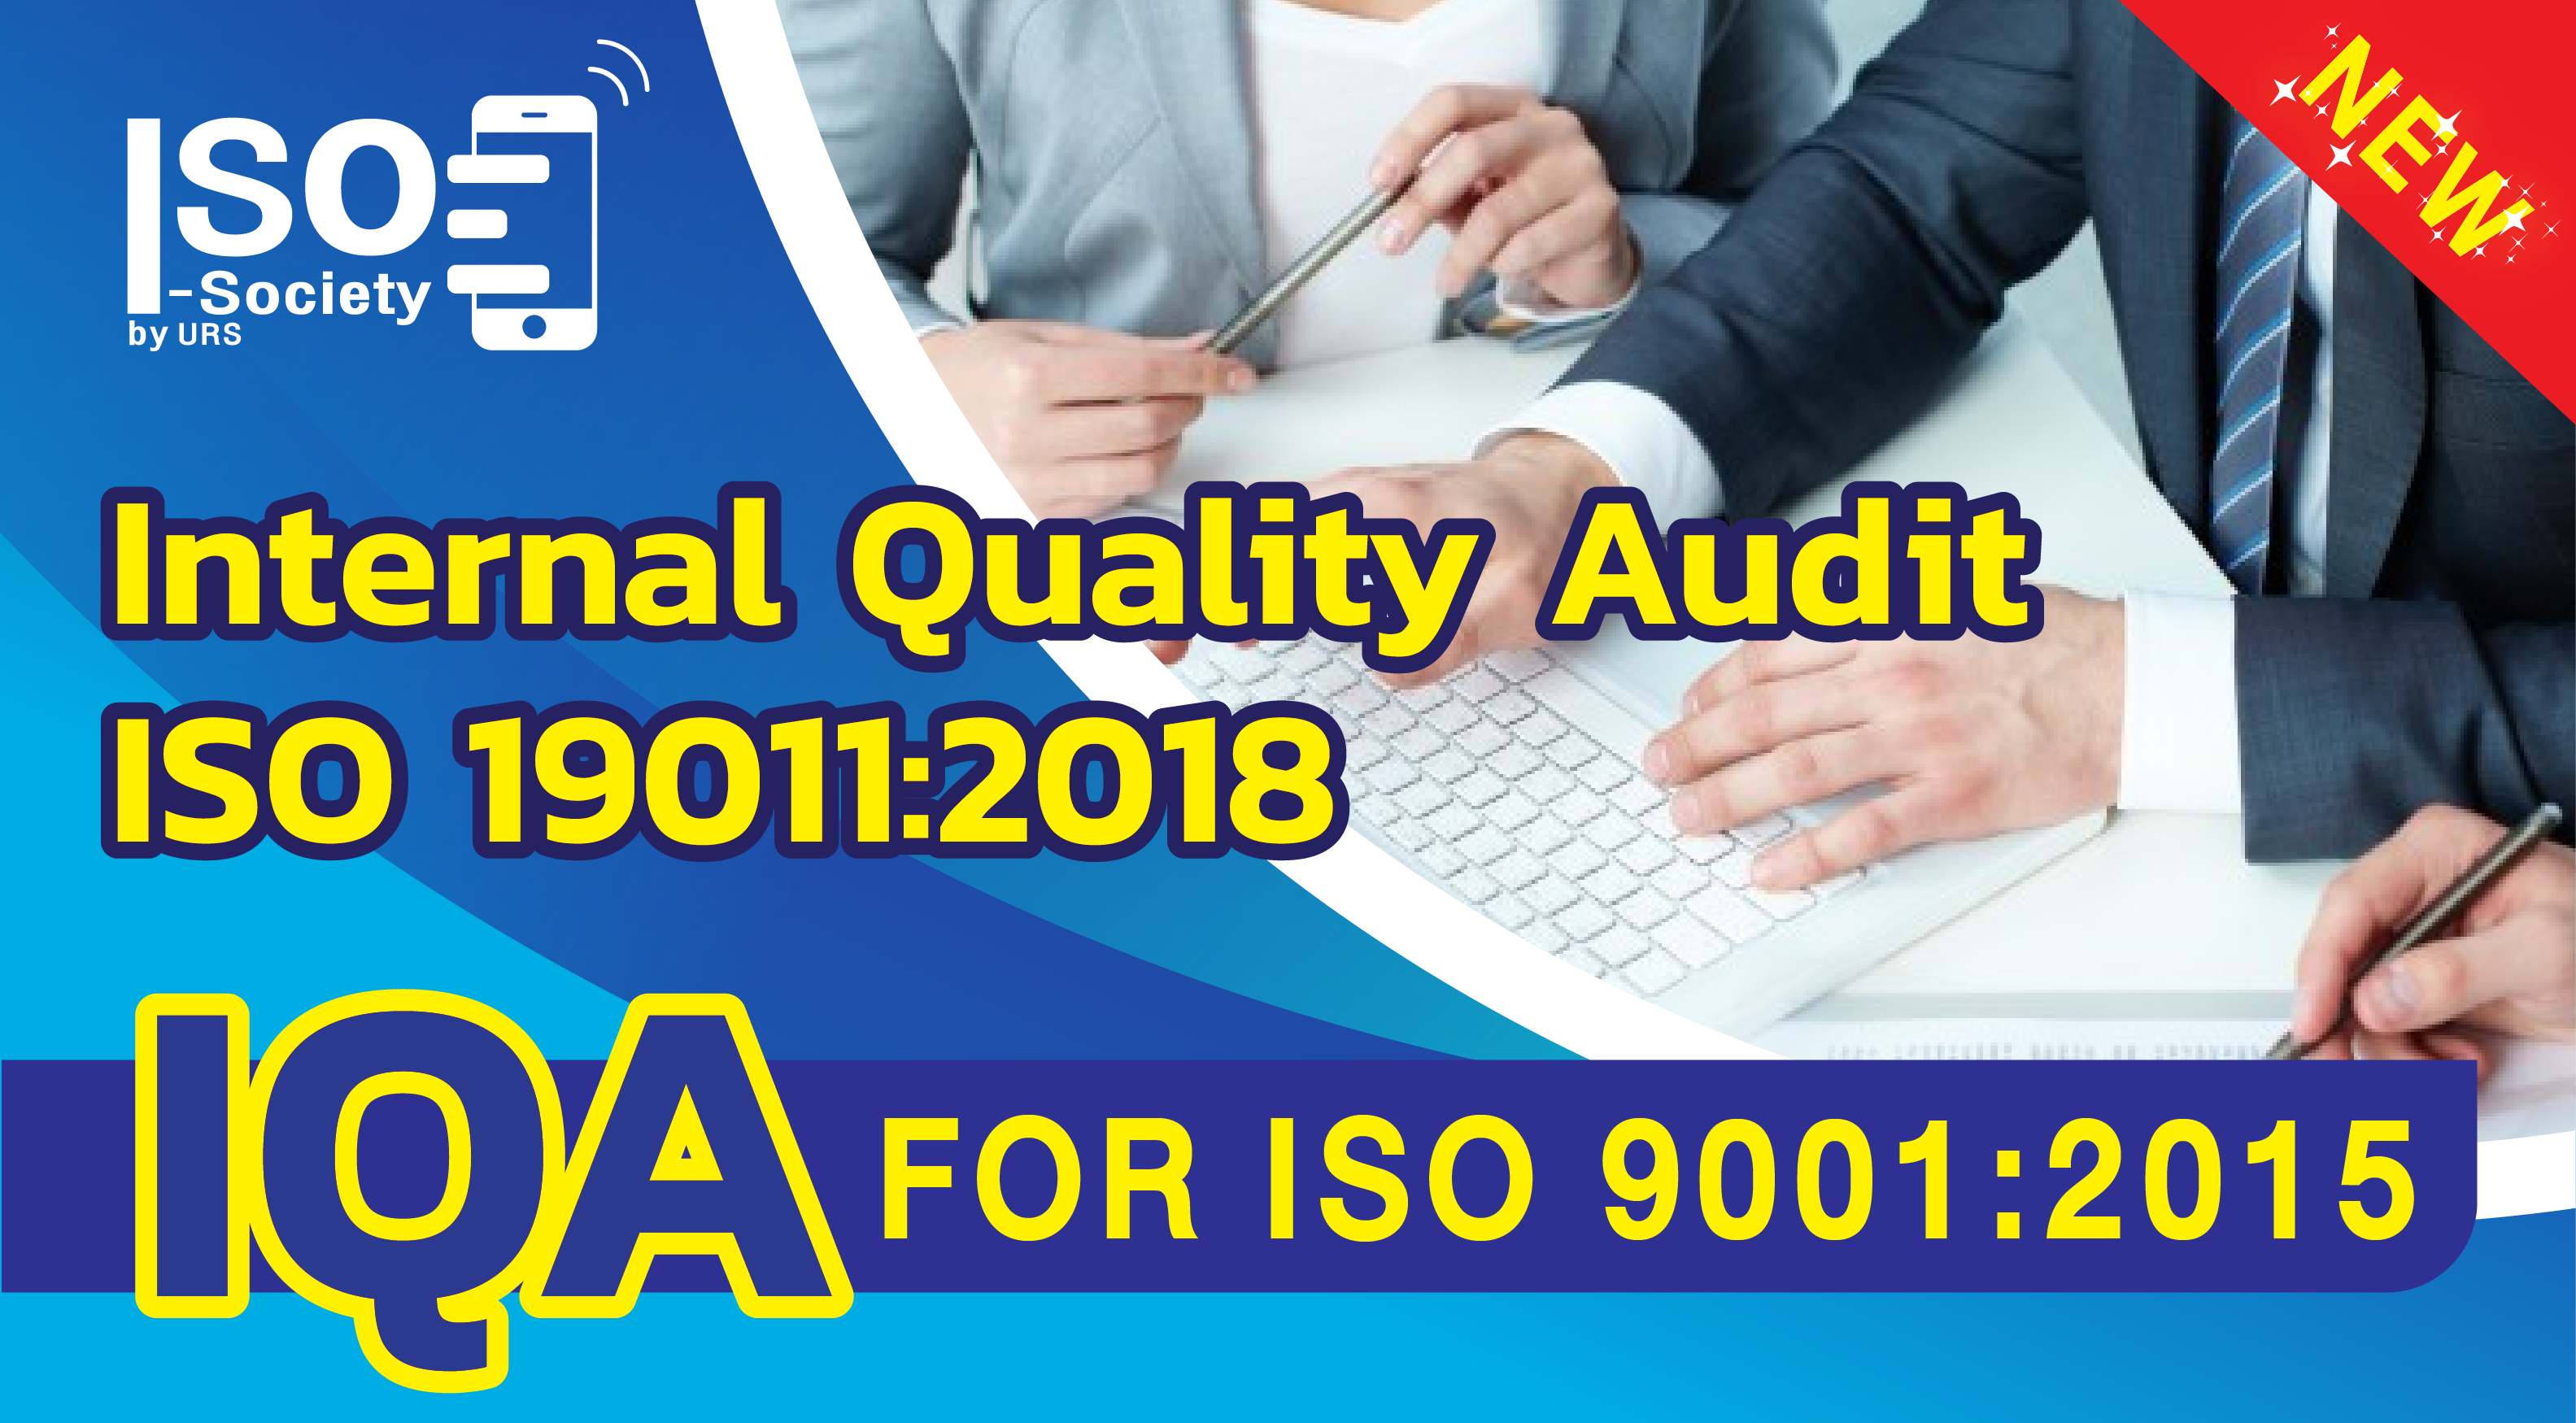 IQA 19011:2018 for ISO 9001:2015